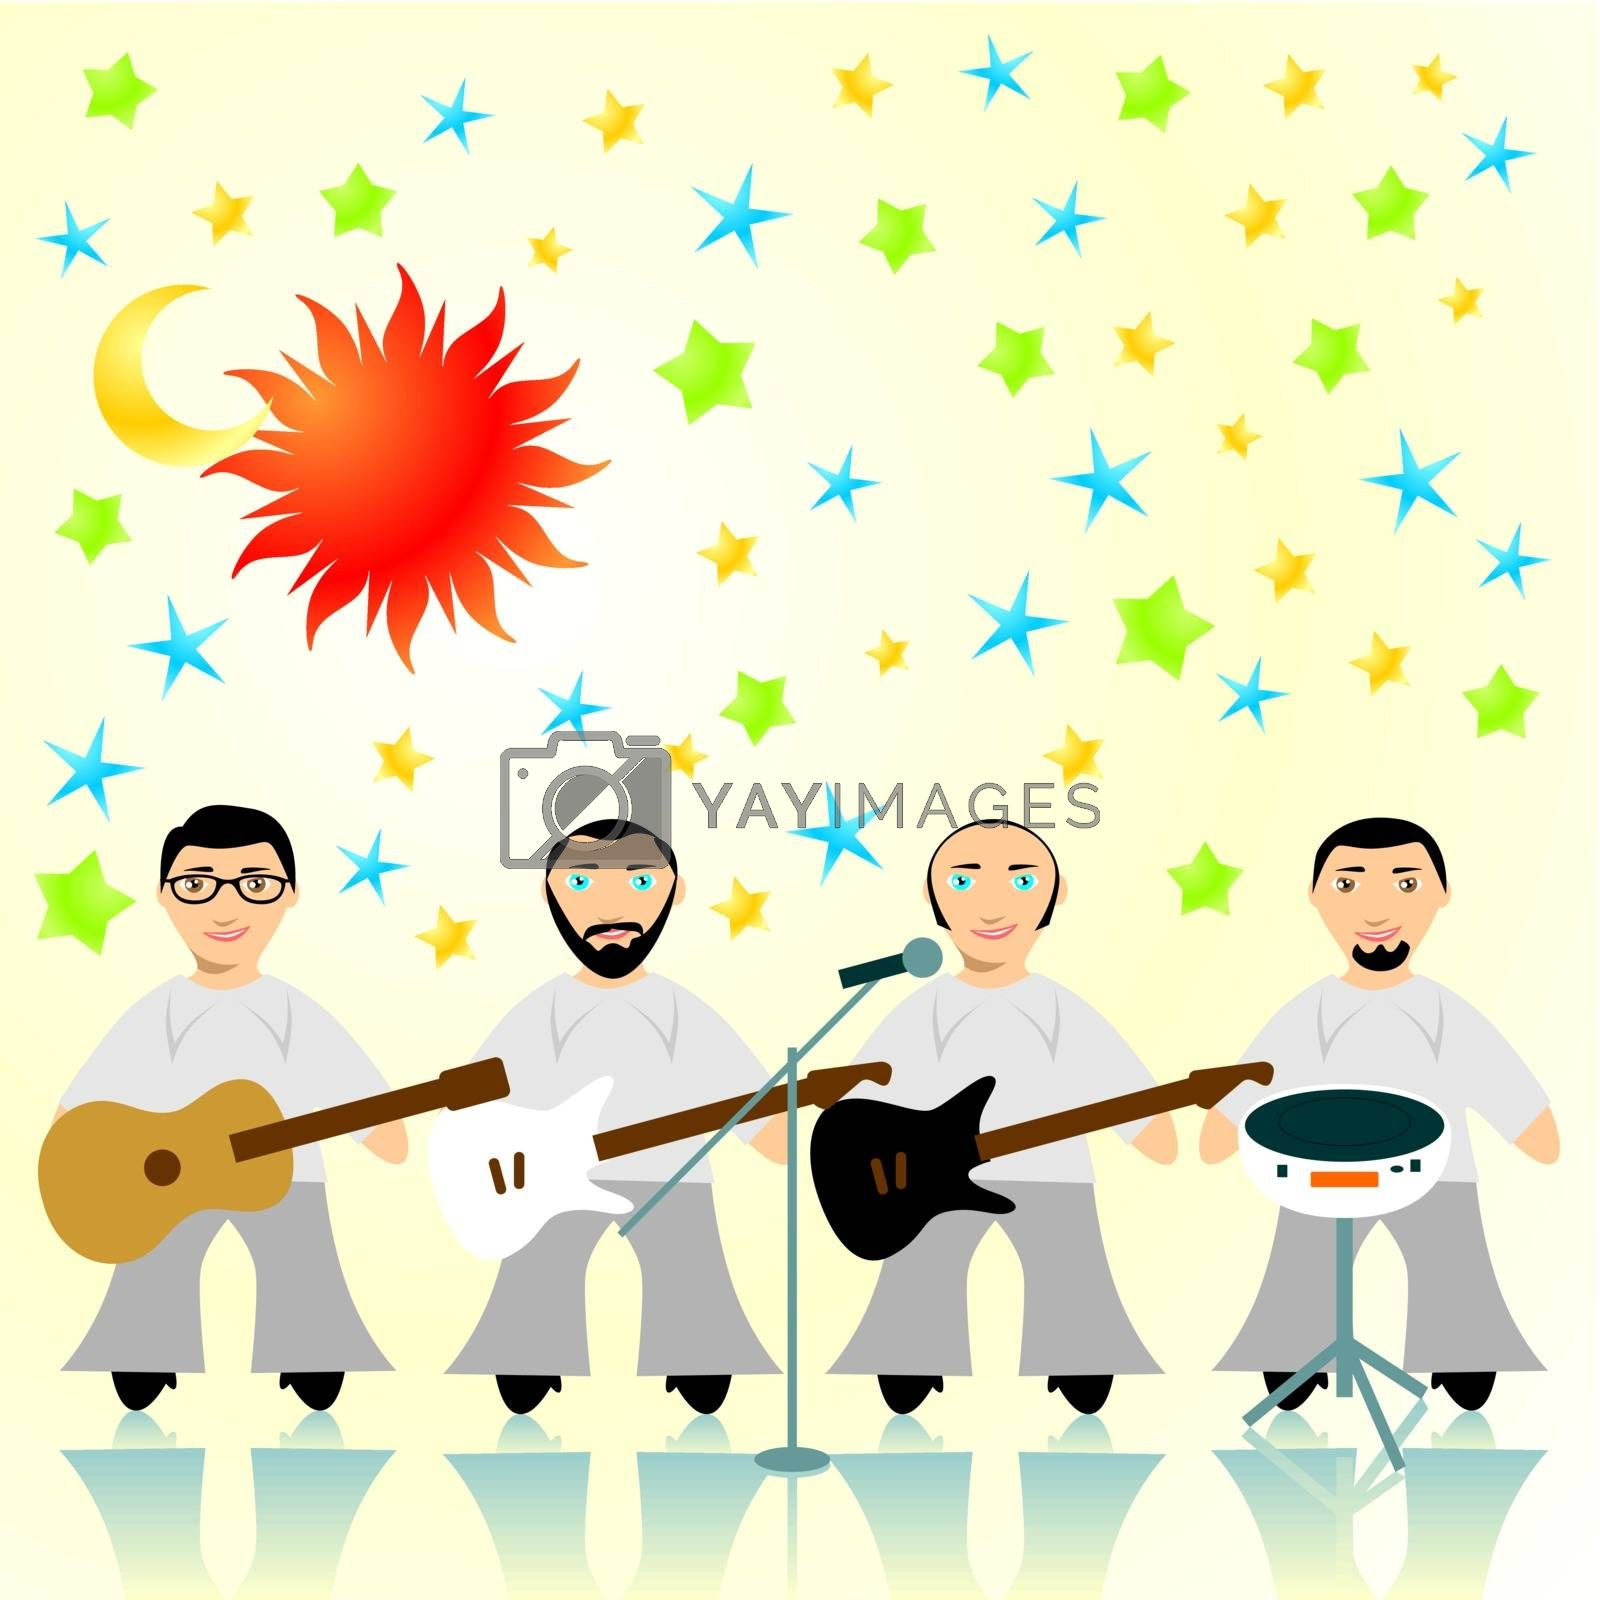 fully editable vector illustration of one rock band